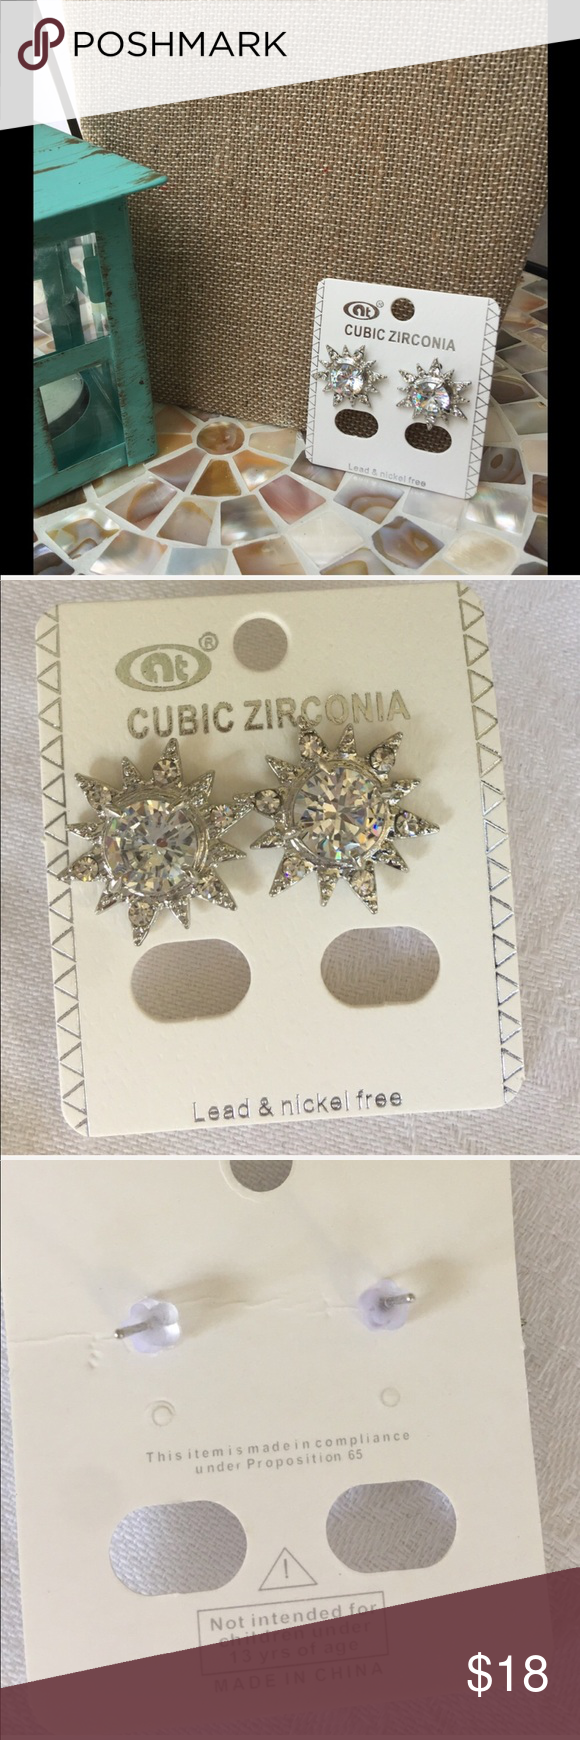 🆕 Cubic Zirconia Sunburst earrings in silver tone Cubic Zirconia Sunburst earrings in silver tone - these gems are a must have touch of sparkle. Also have a listing with them in gold  tone!                                                ✅I ship same or next day ✅Bundle for discount Jewelry Earrings